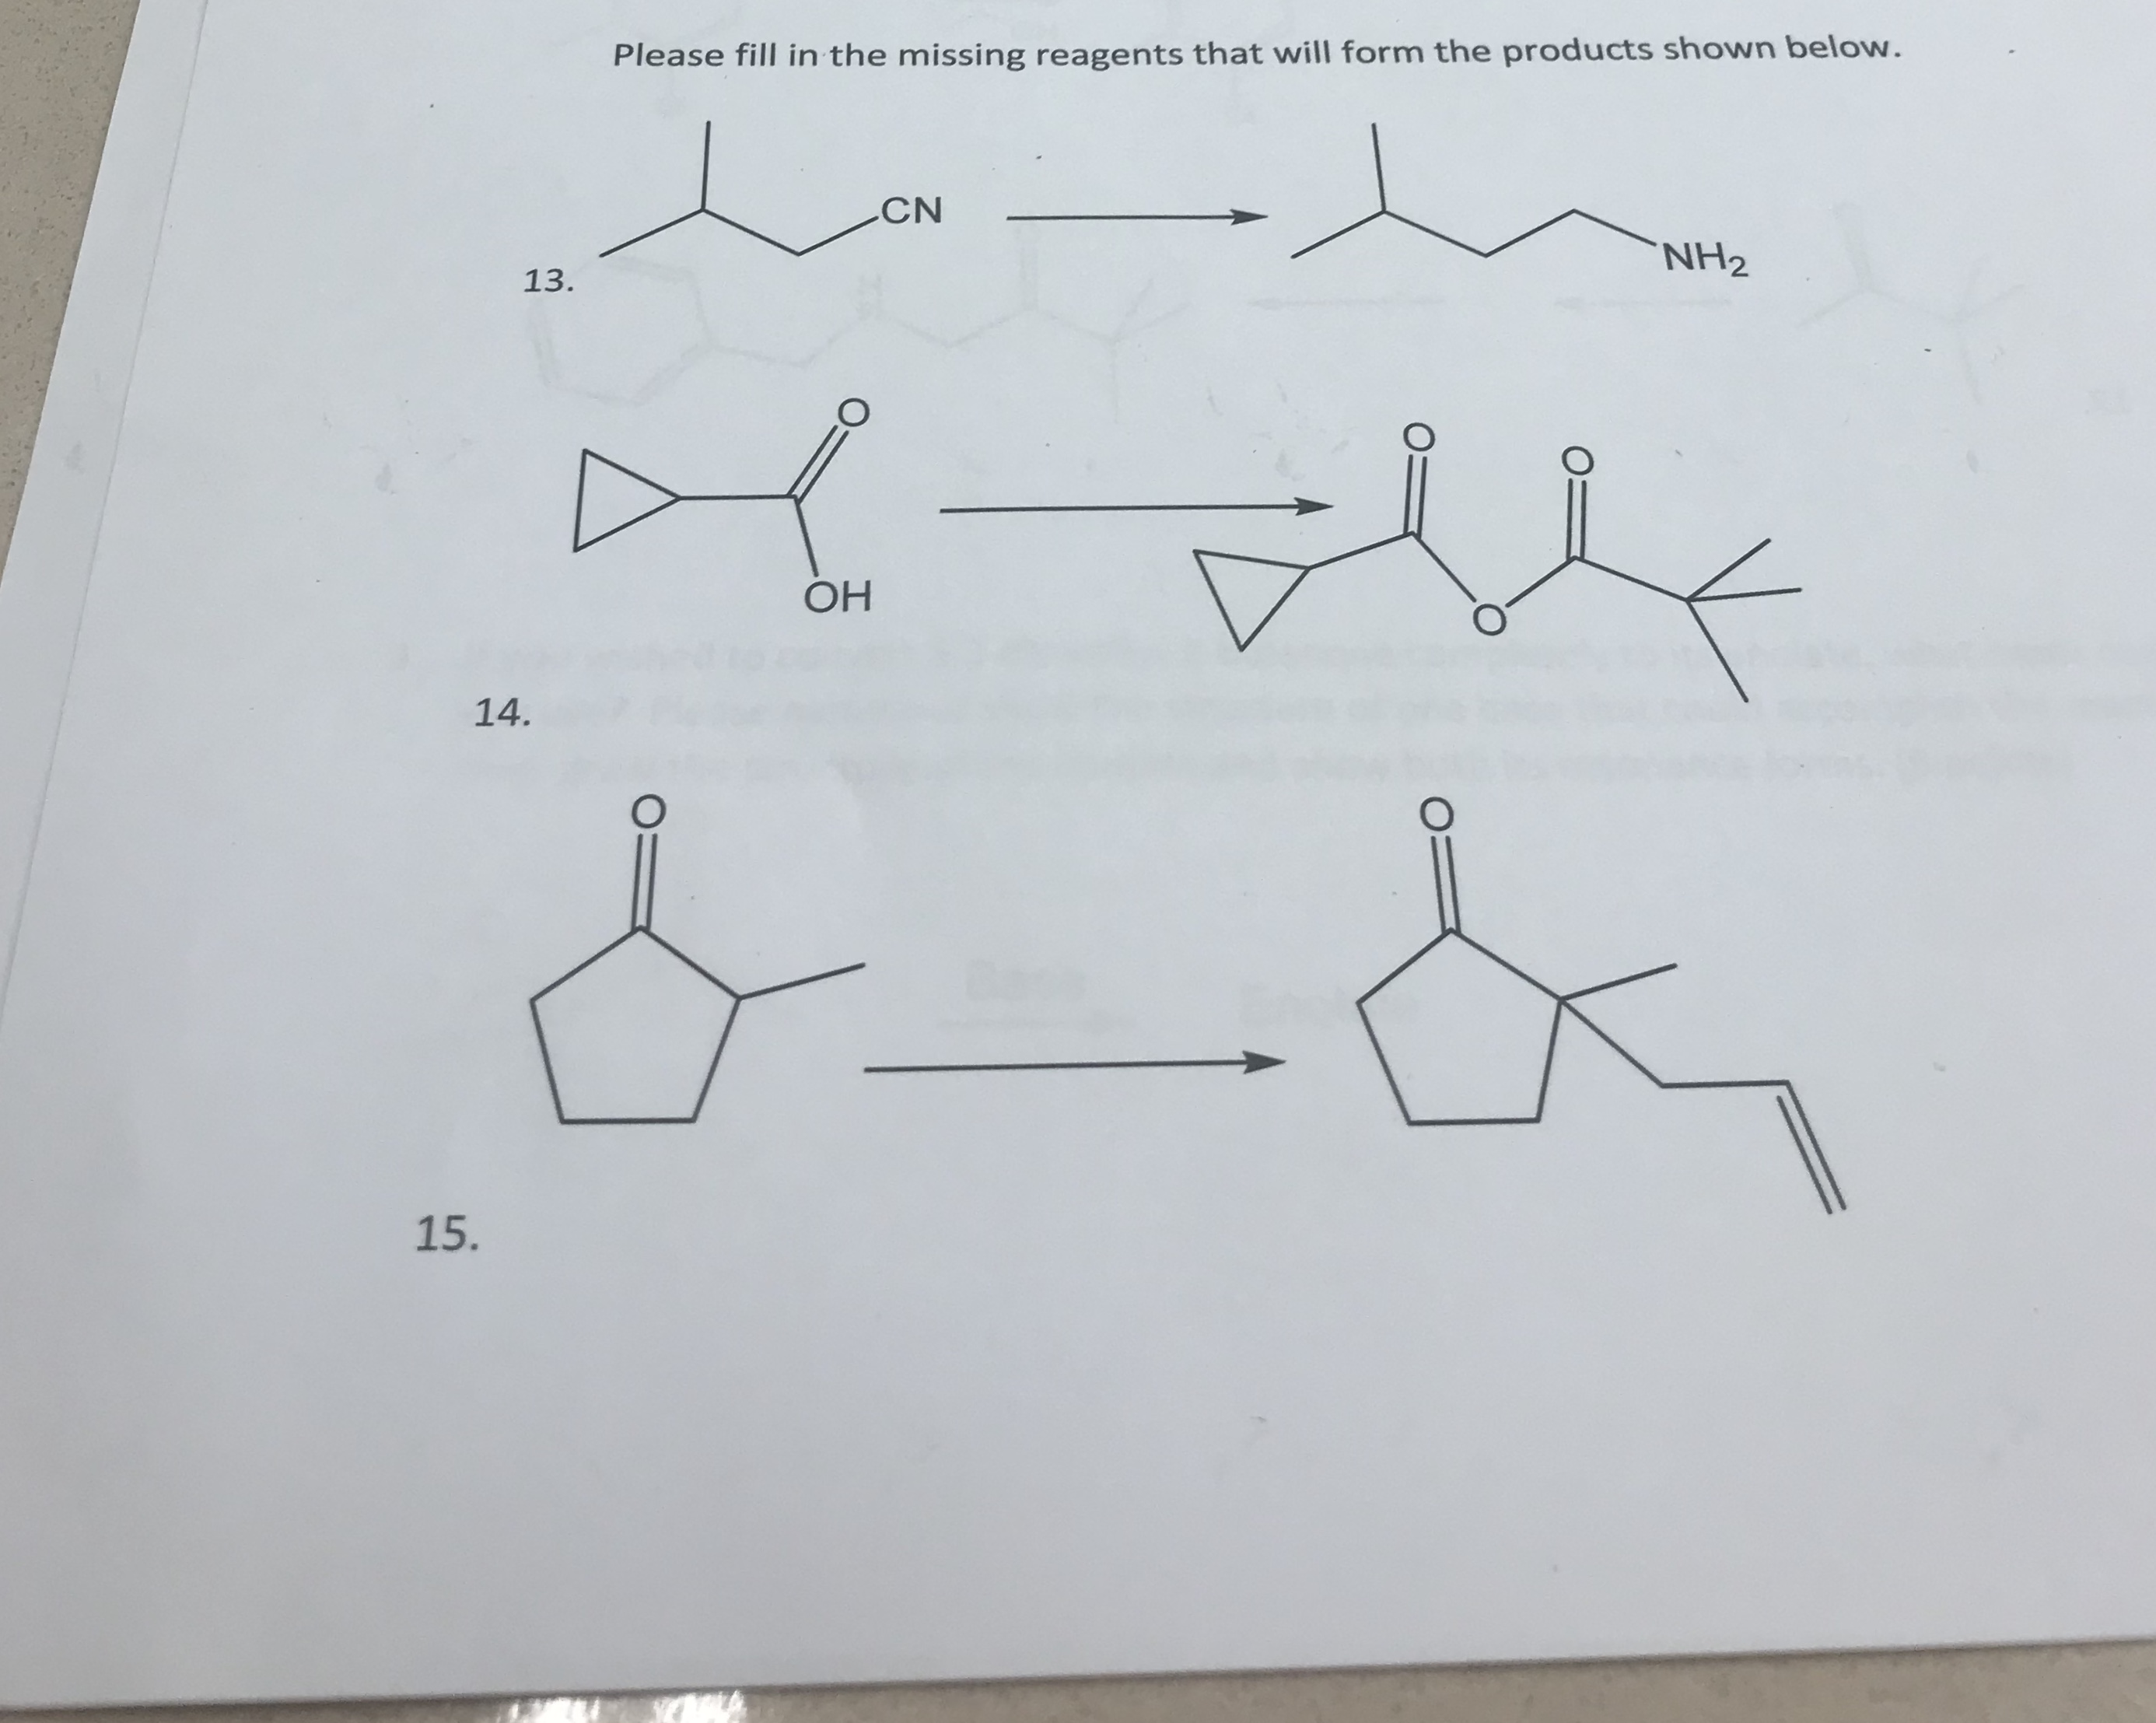 Please fill in the missing reagents that will form the products shown below. CN NH2 13. OH 14. 15.